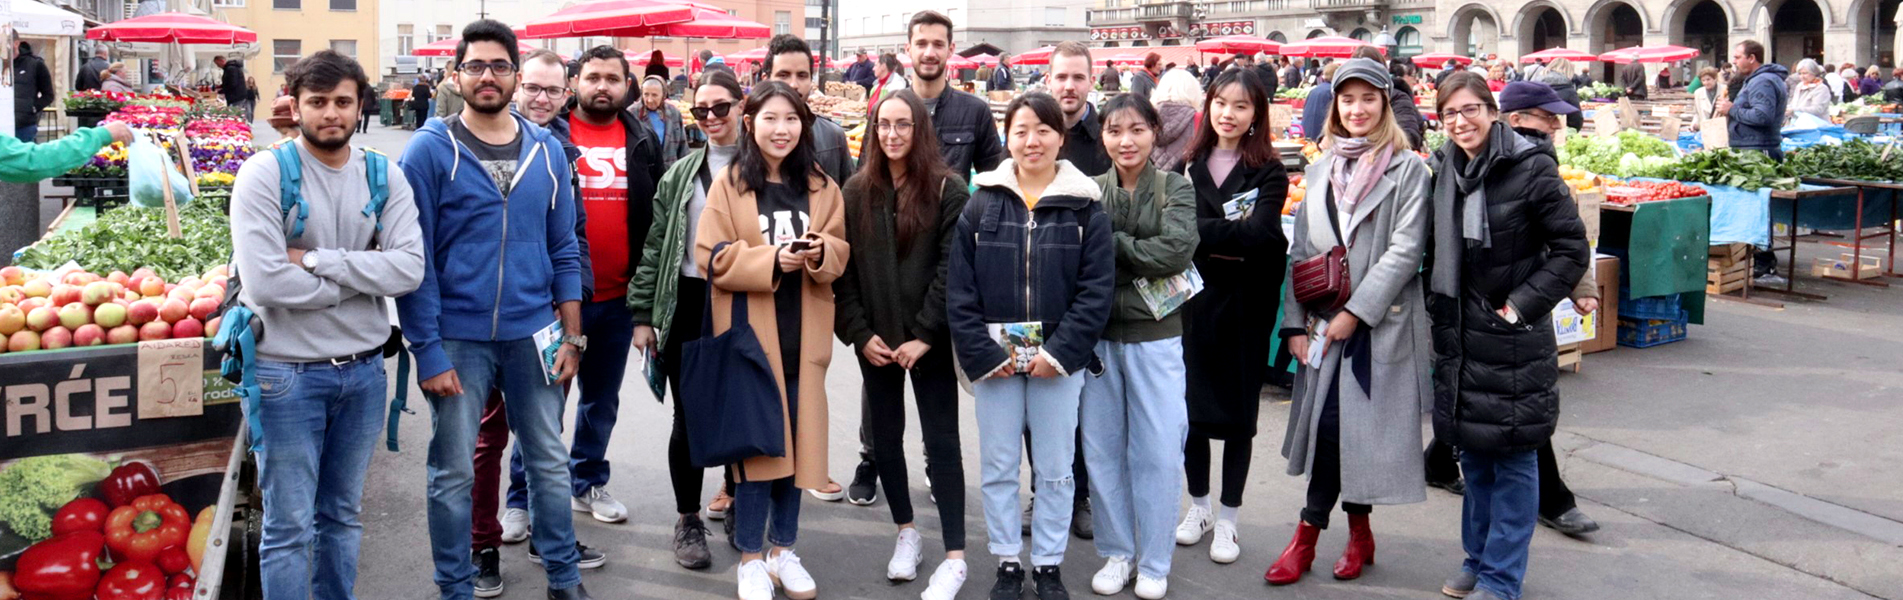 Image for Welcome Zagreb Sightseeing Tour for Exchange and Erasmus+ Students